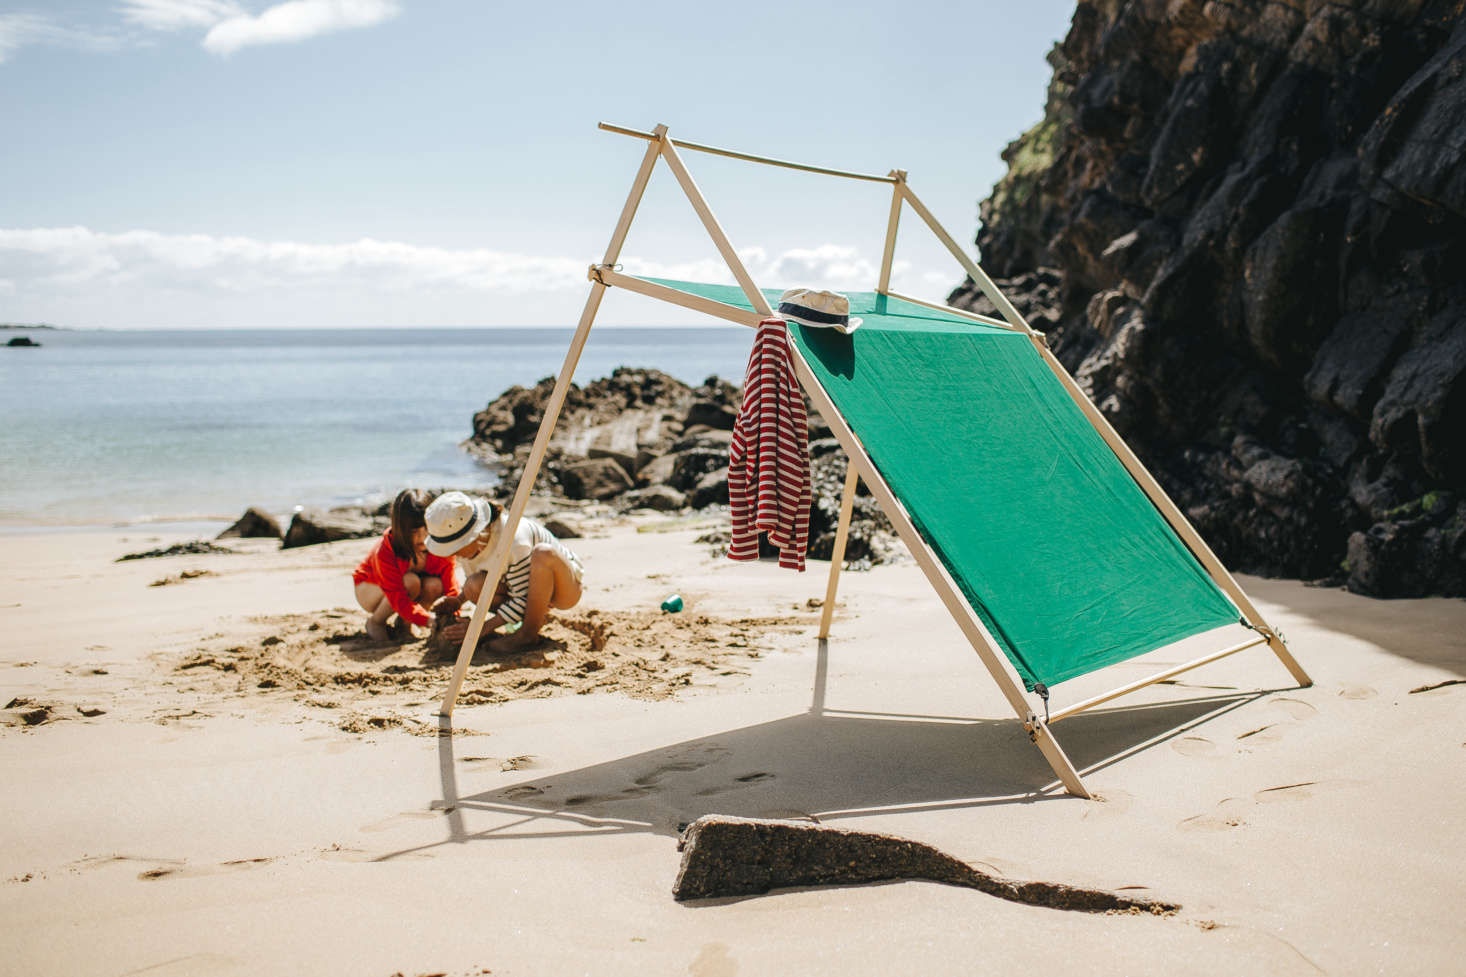 Belle-Île is the best design for maximum protection from the wind and sun, notes the company. It weighs about 7 kg ( pounds), and it can be assembled in about four minutes. It&#8